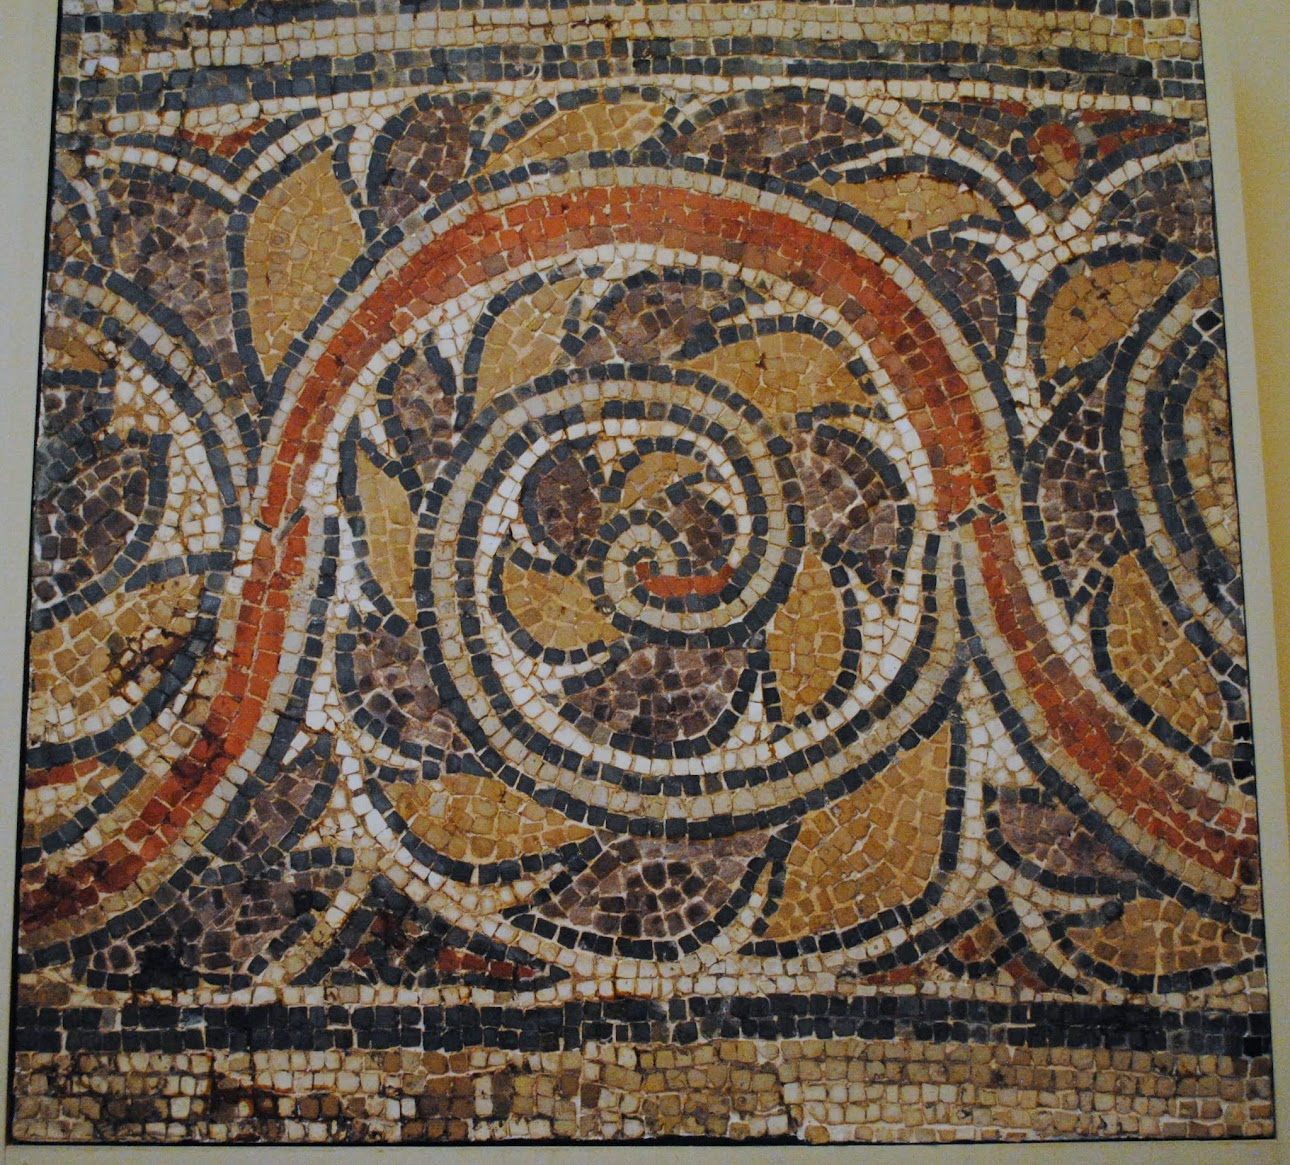 My Photos: British Museum -- Ancient Mosaics from Londinium